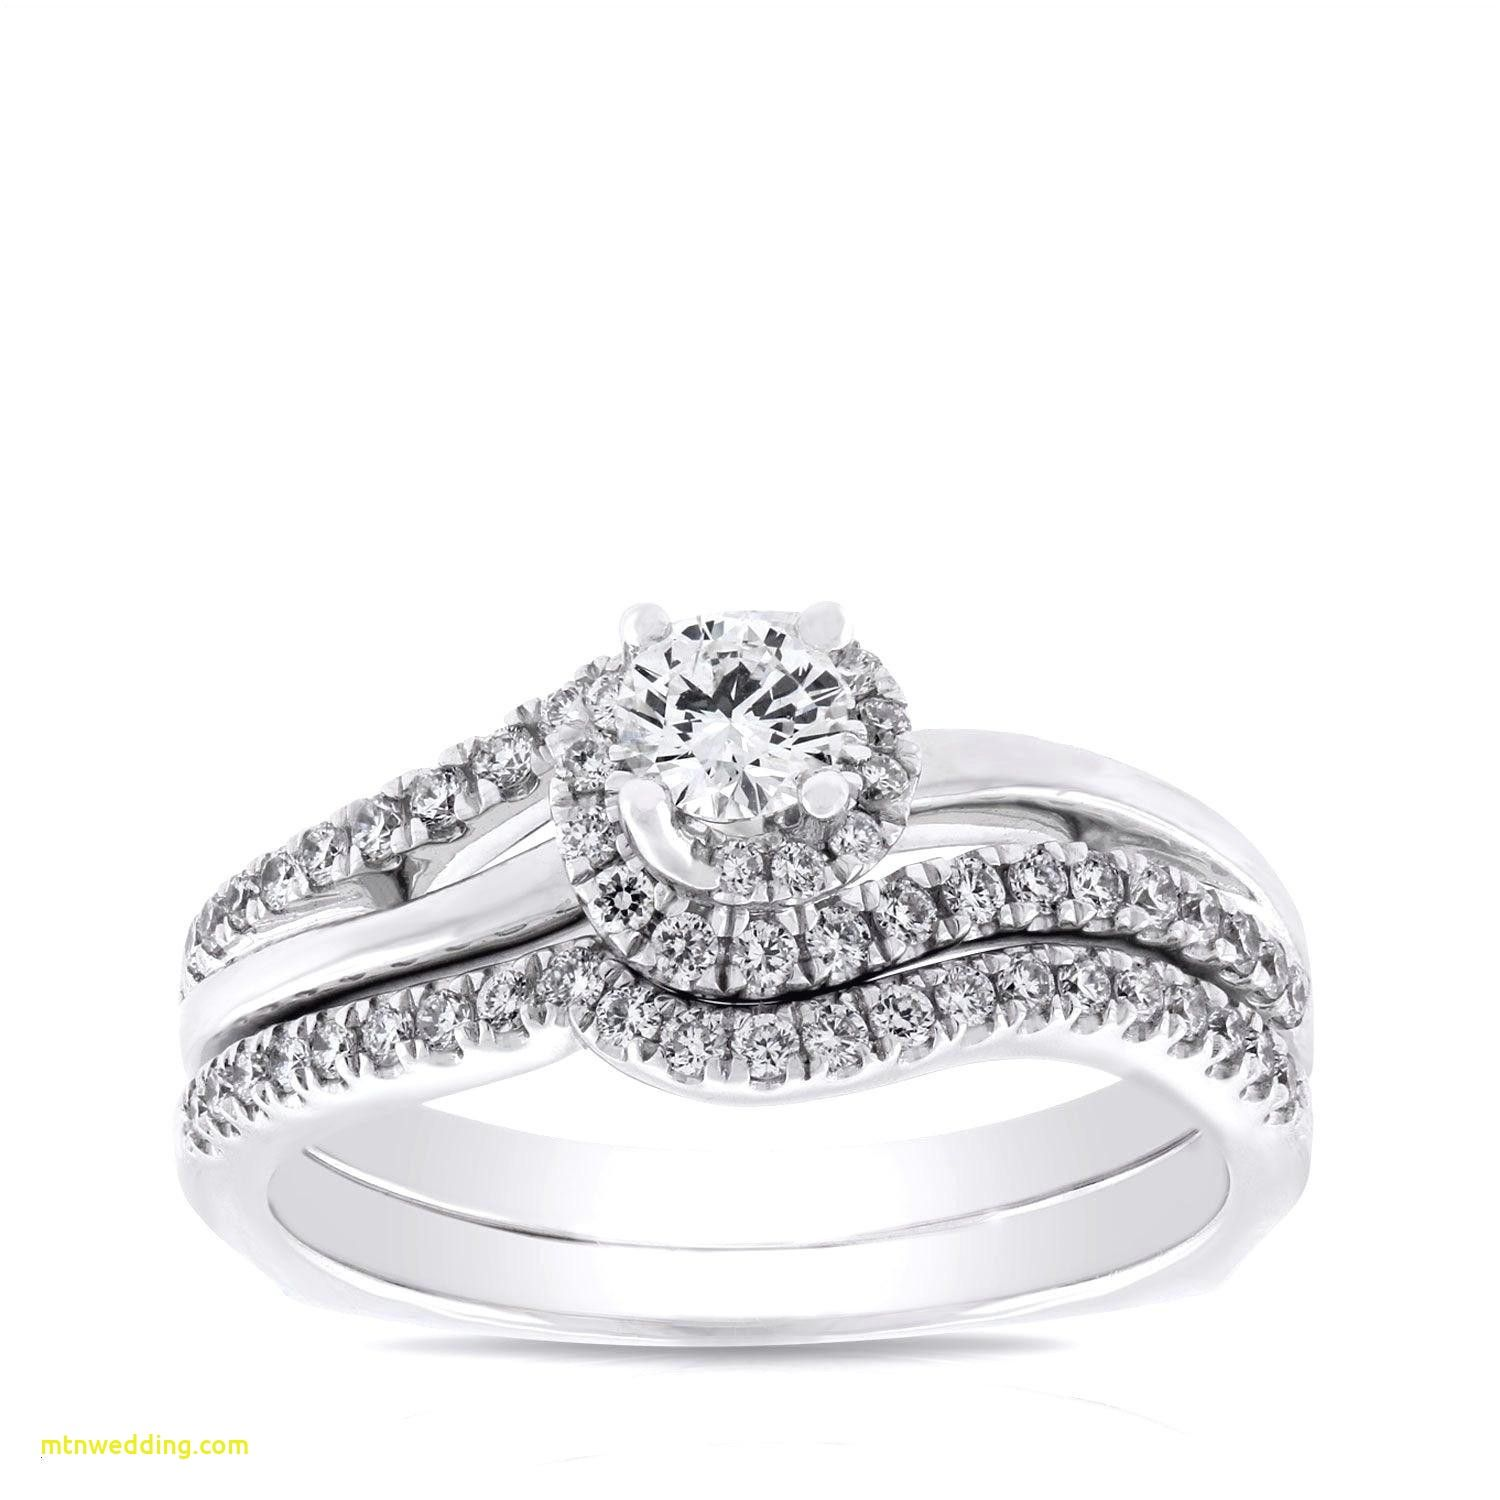 Best Of Black Gold Band Engagement Rings Wedding Ring Ideas In